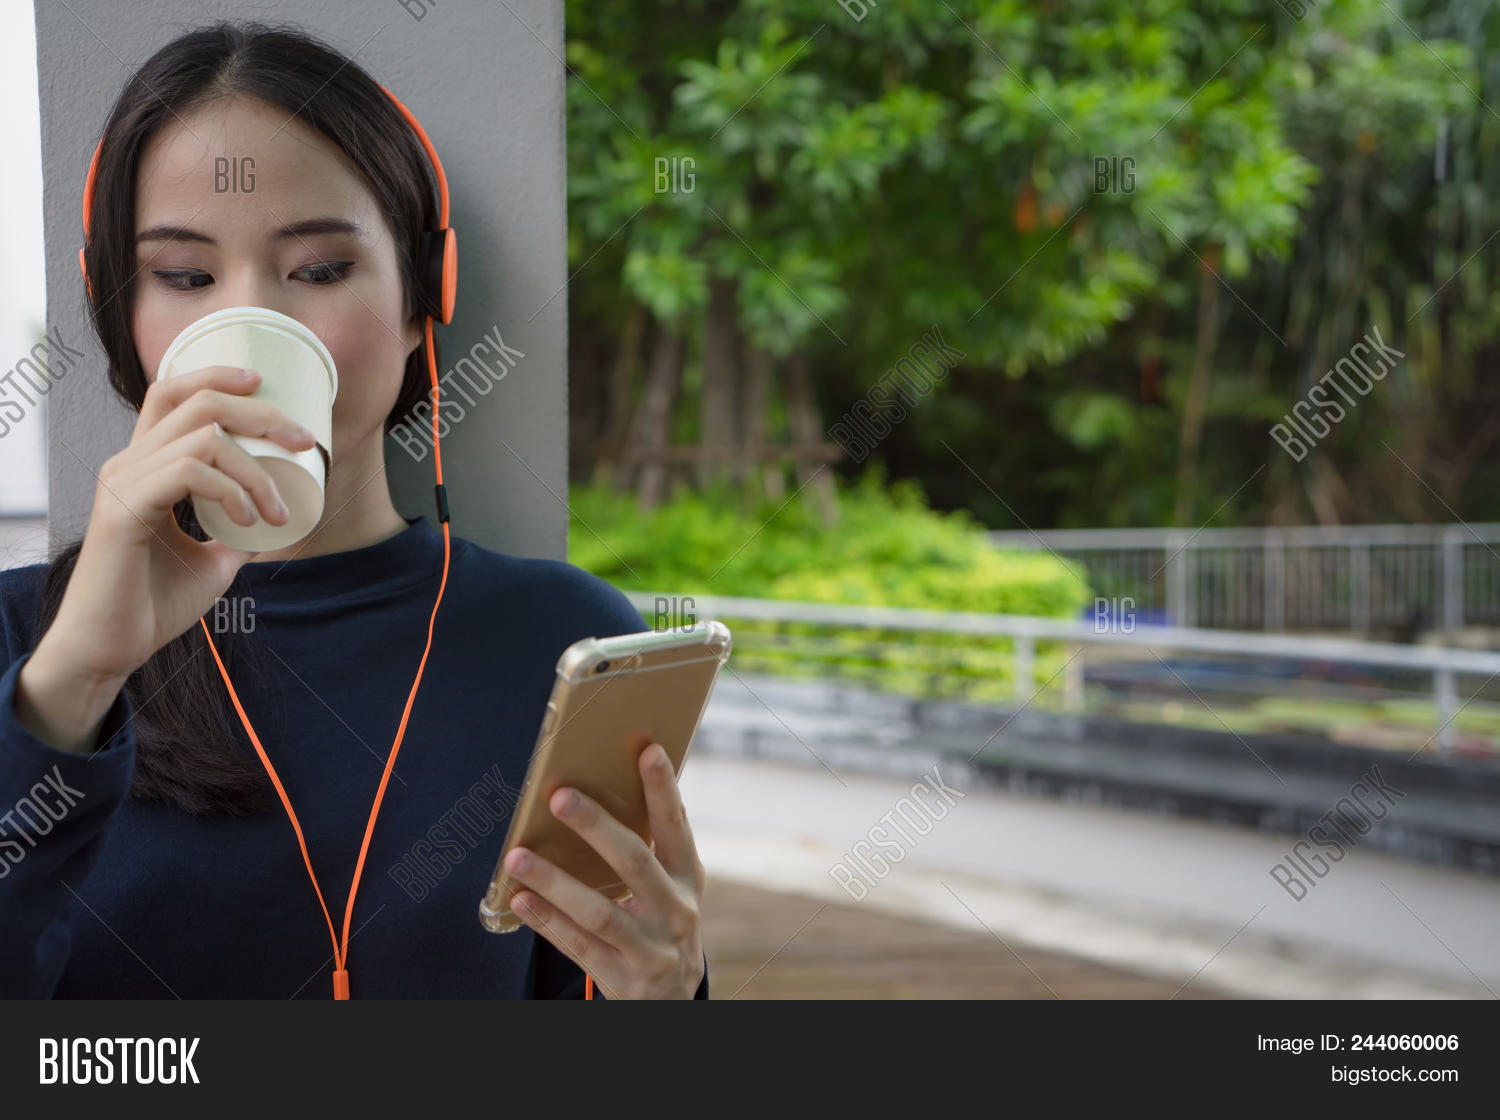 Woman Drinking Coffee Listening Music With Smartphone Headset Happy Beautiful Girl Relax With Coffe 244060006 Image Stock Photo